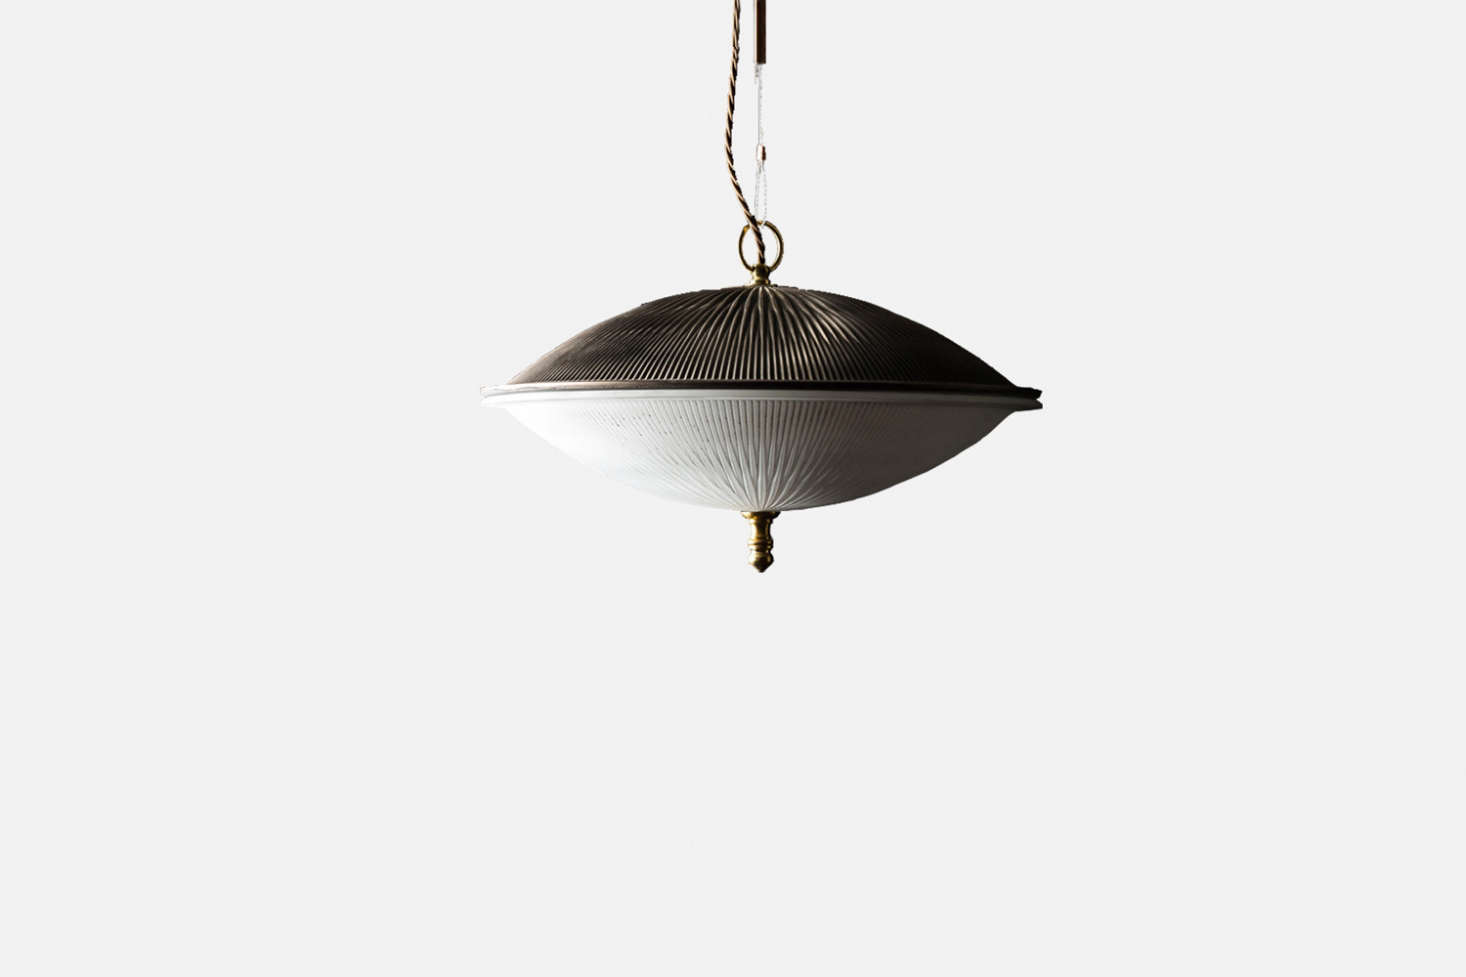 The pendant light is the Felix Original Art Deco Pendant Light; £370 at Felix Lighting Specialists.